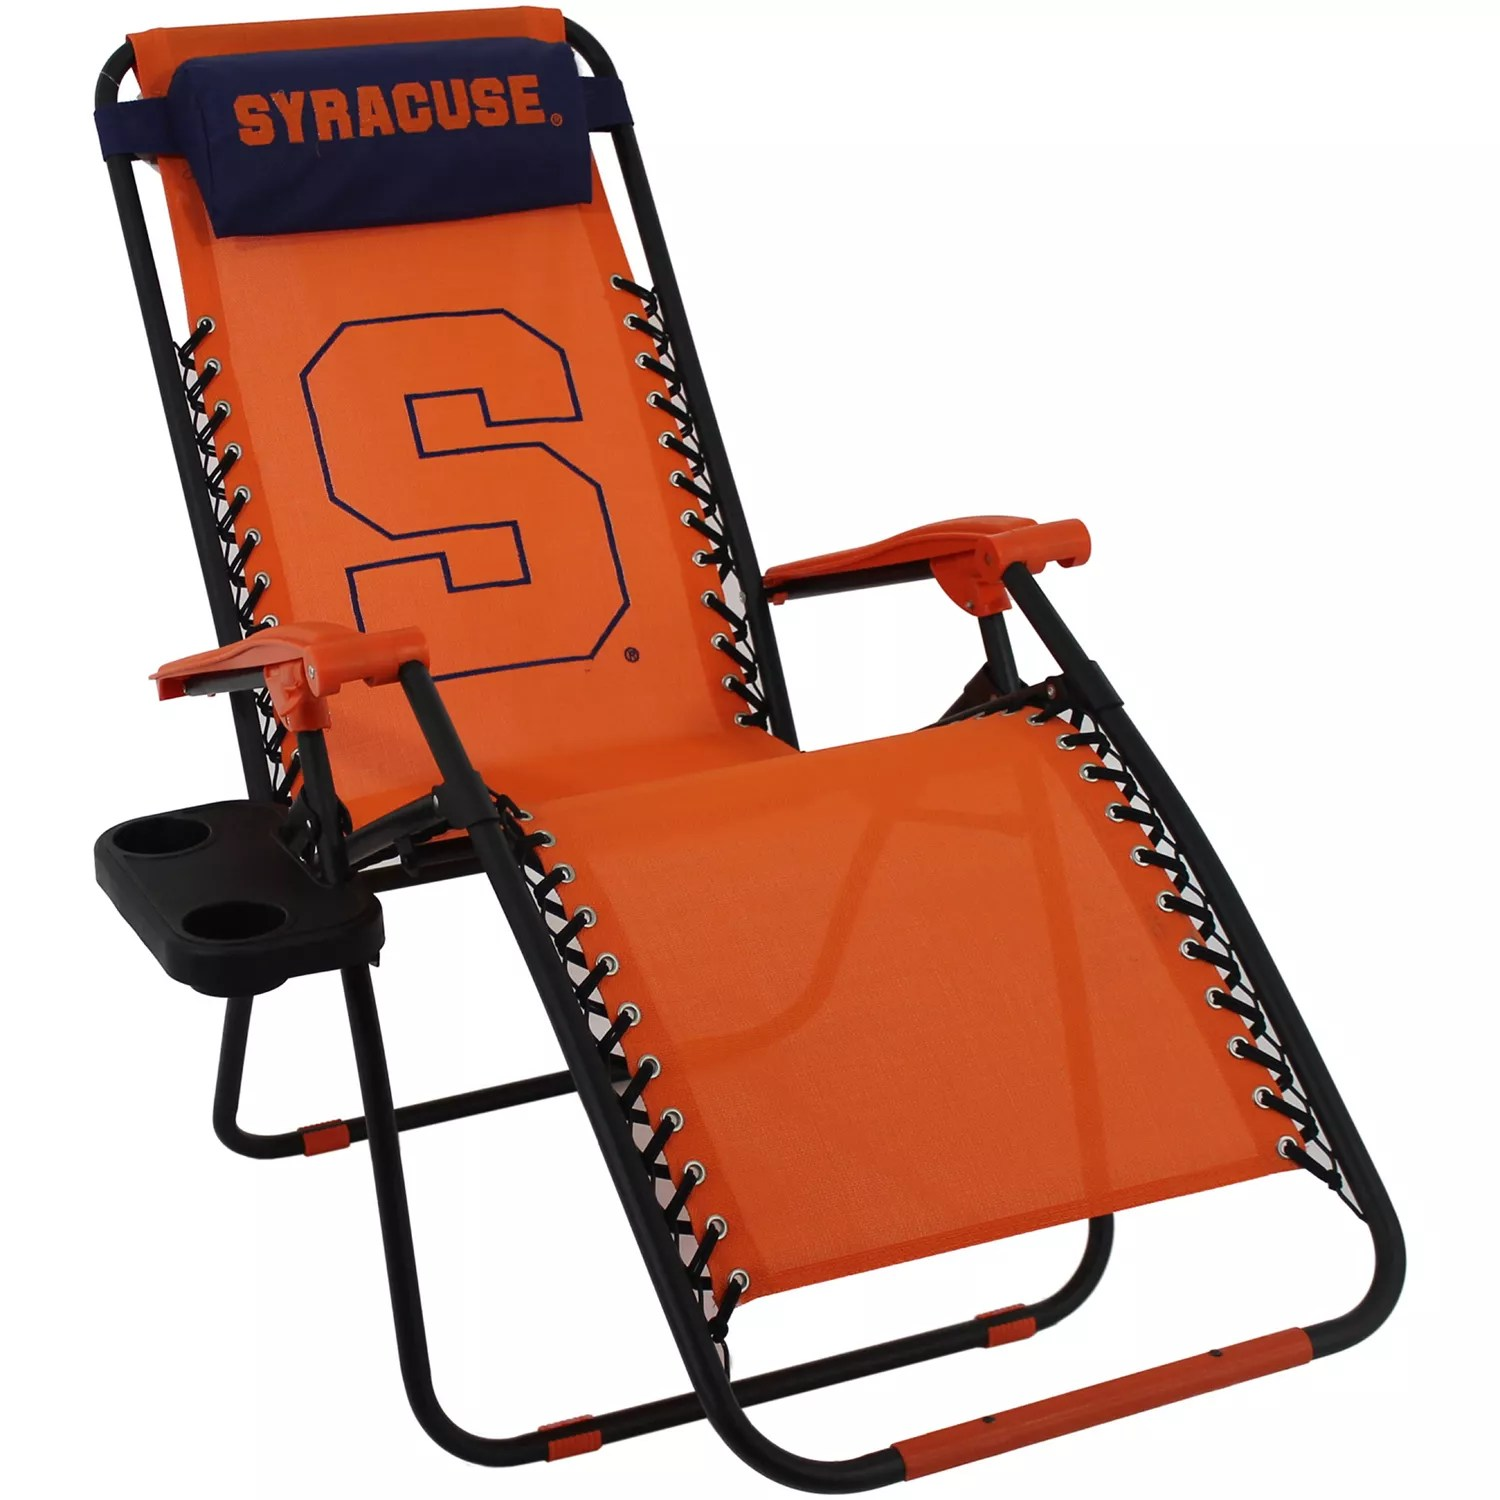 kohls zero gravity chair cover alternatives wedding chairs kohl s college covers syracuse orange